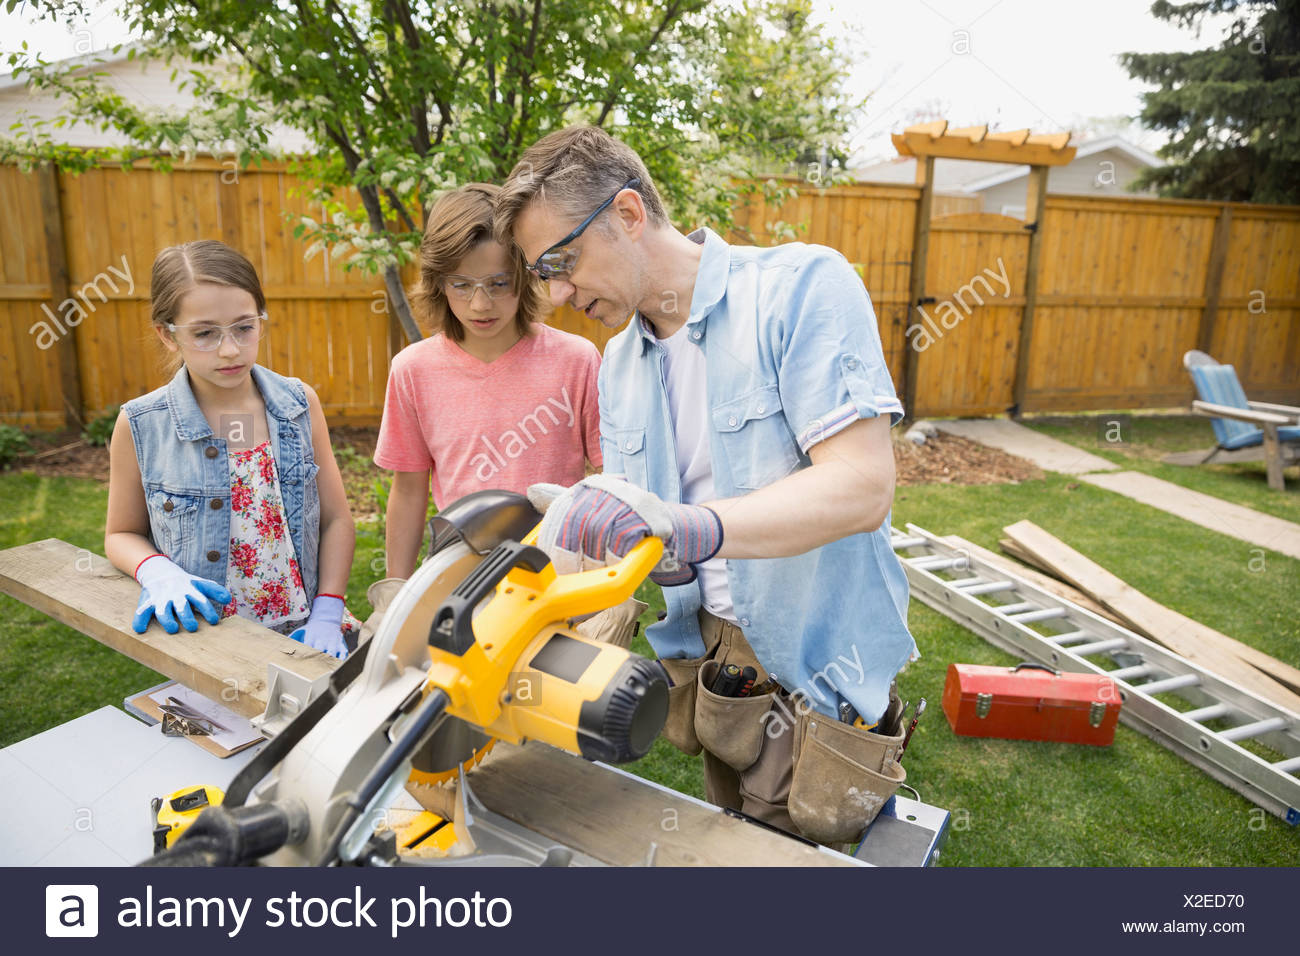 Father teaching children to use table saw - Stock Image